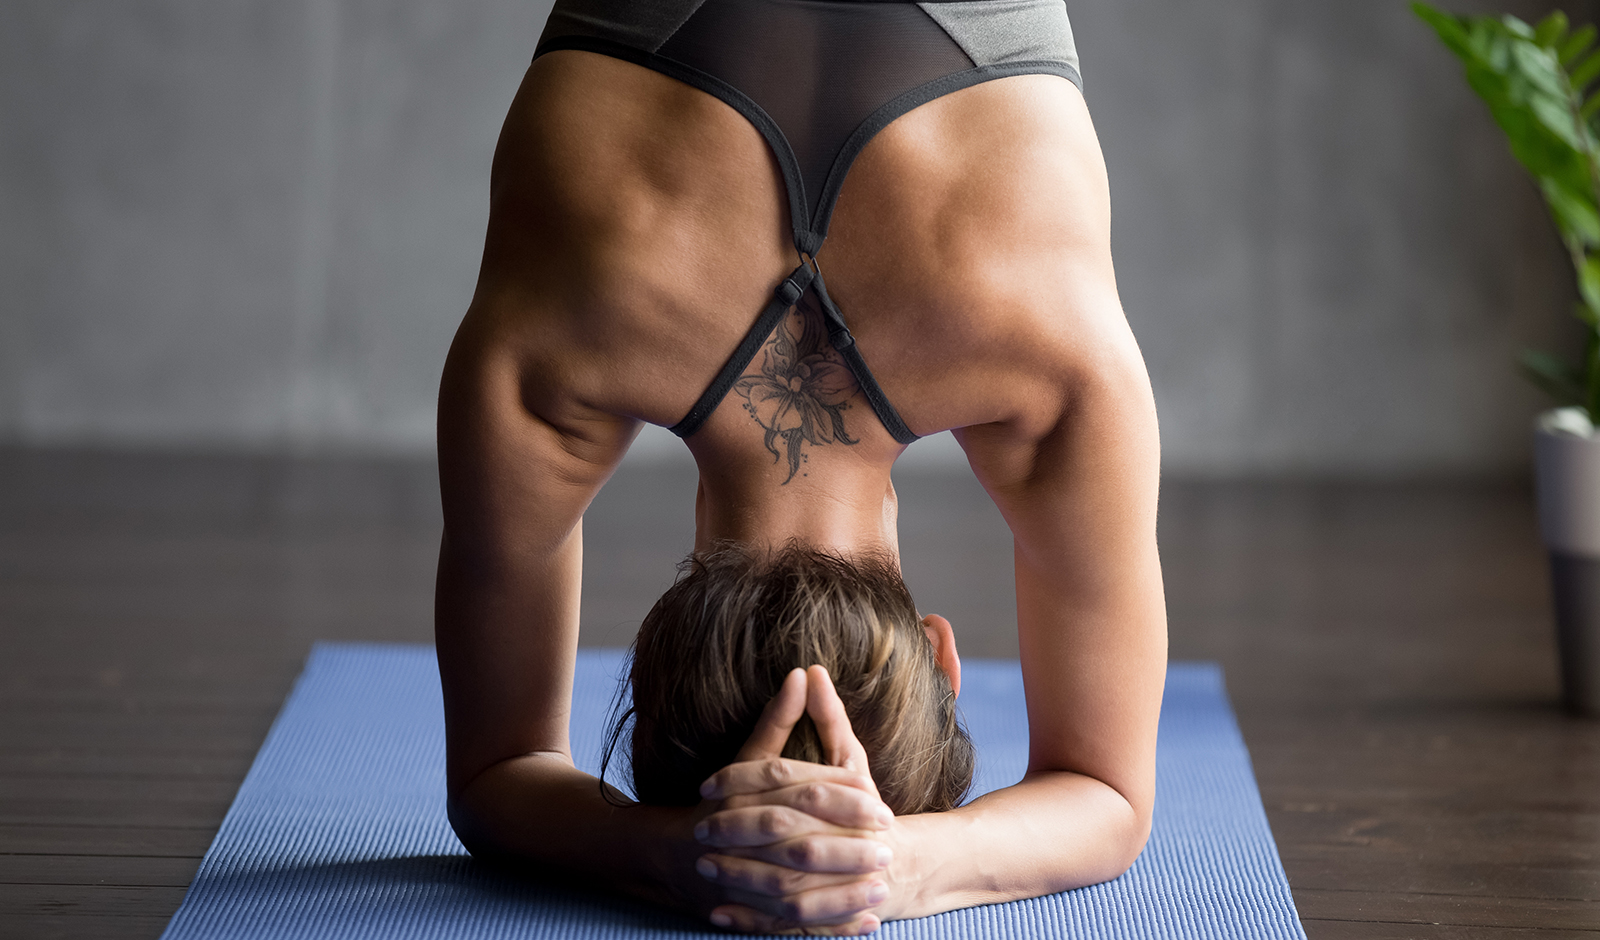 tough-workout-heres-how-to-recovery-woman-working-out-yoga-main-image